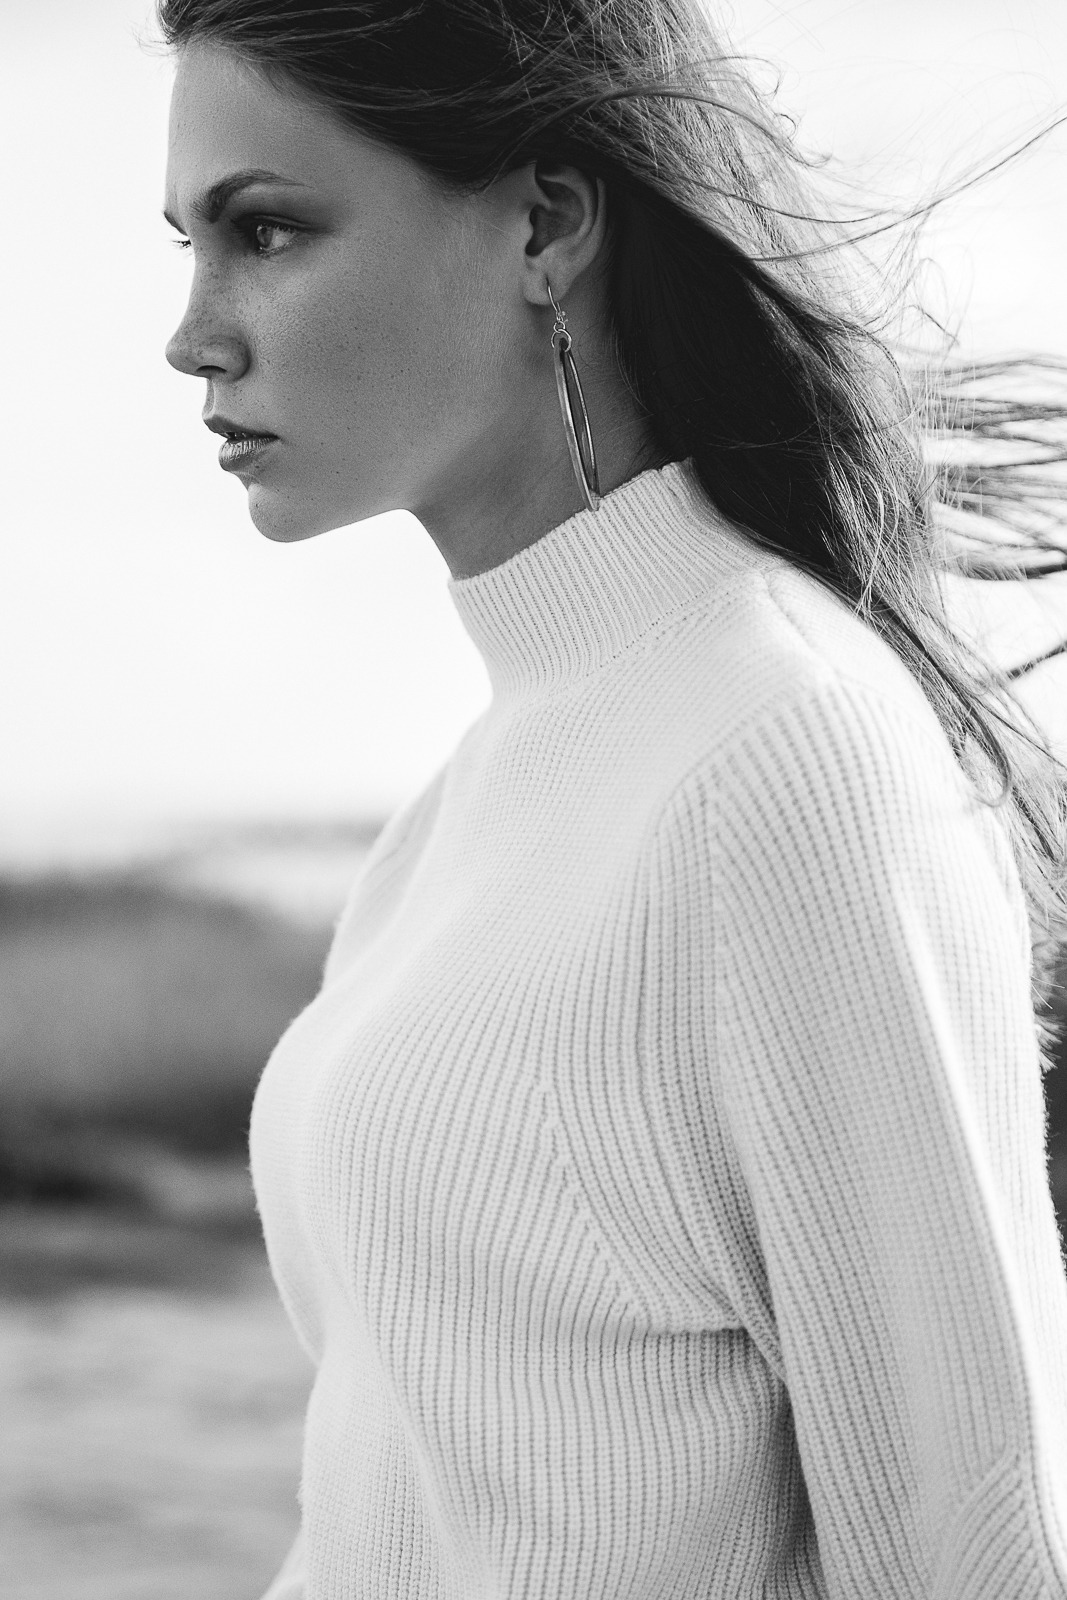 Seabreeze - End of Summer Editorial with model Katya in Tokyo by Ivana Micic